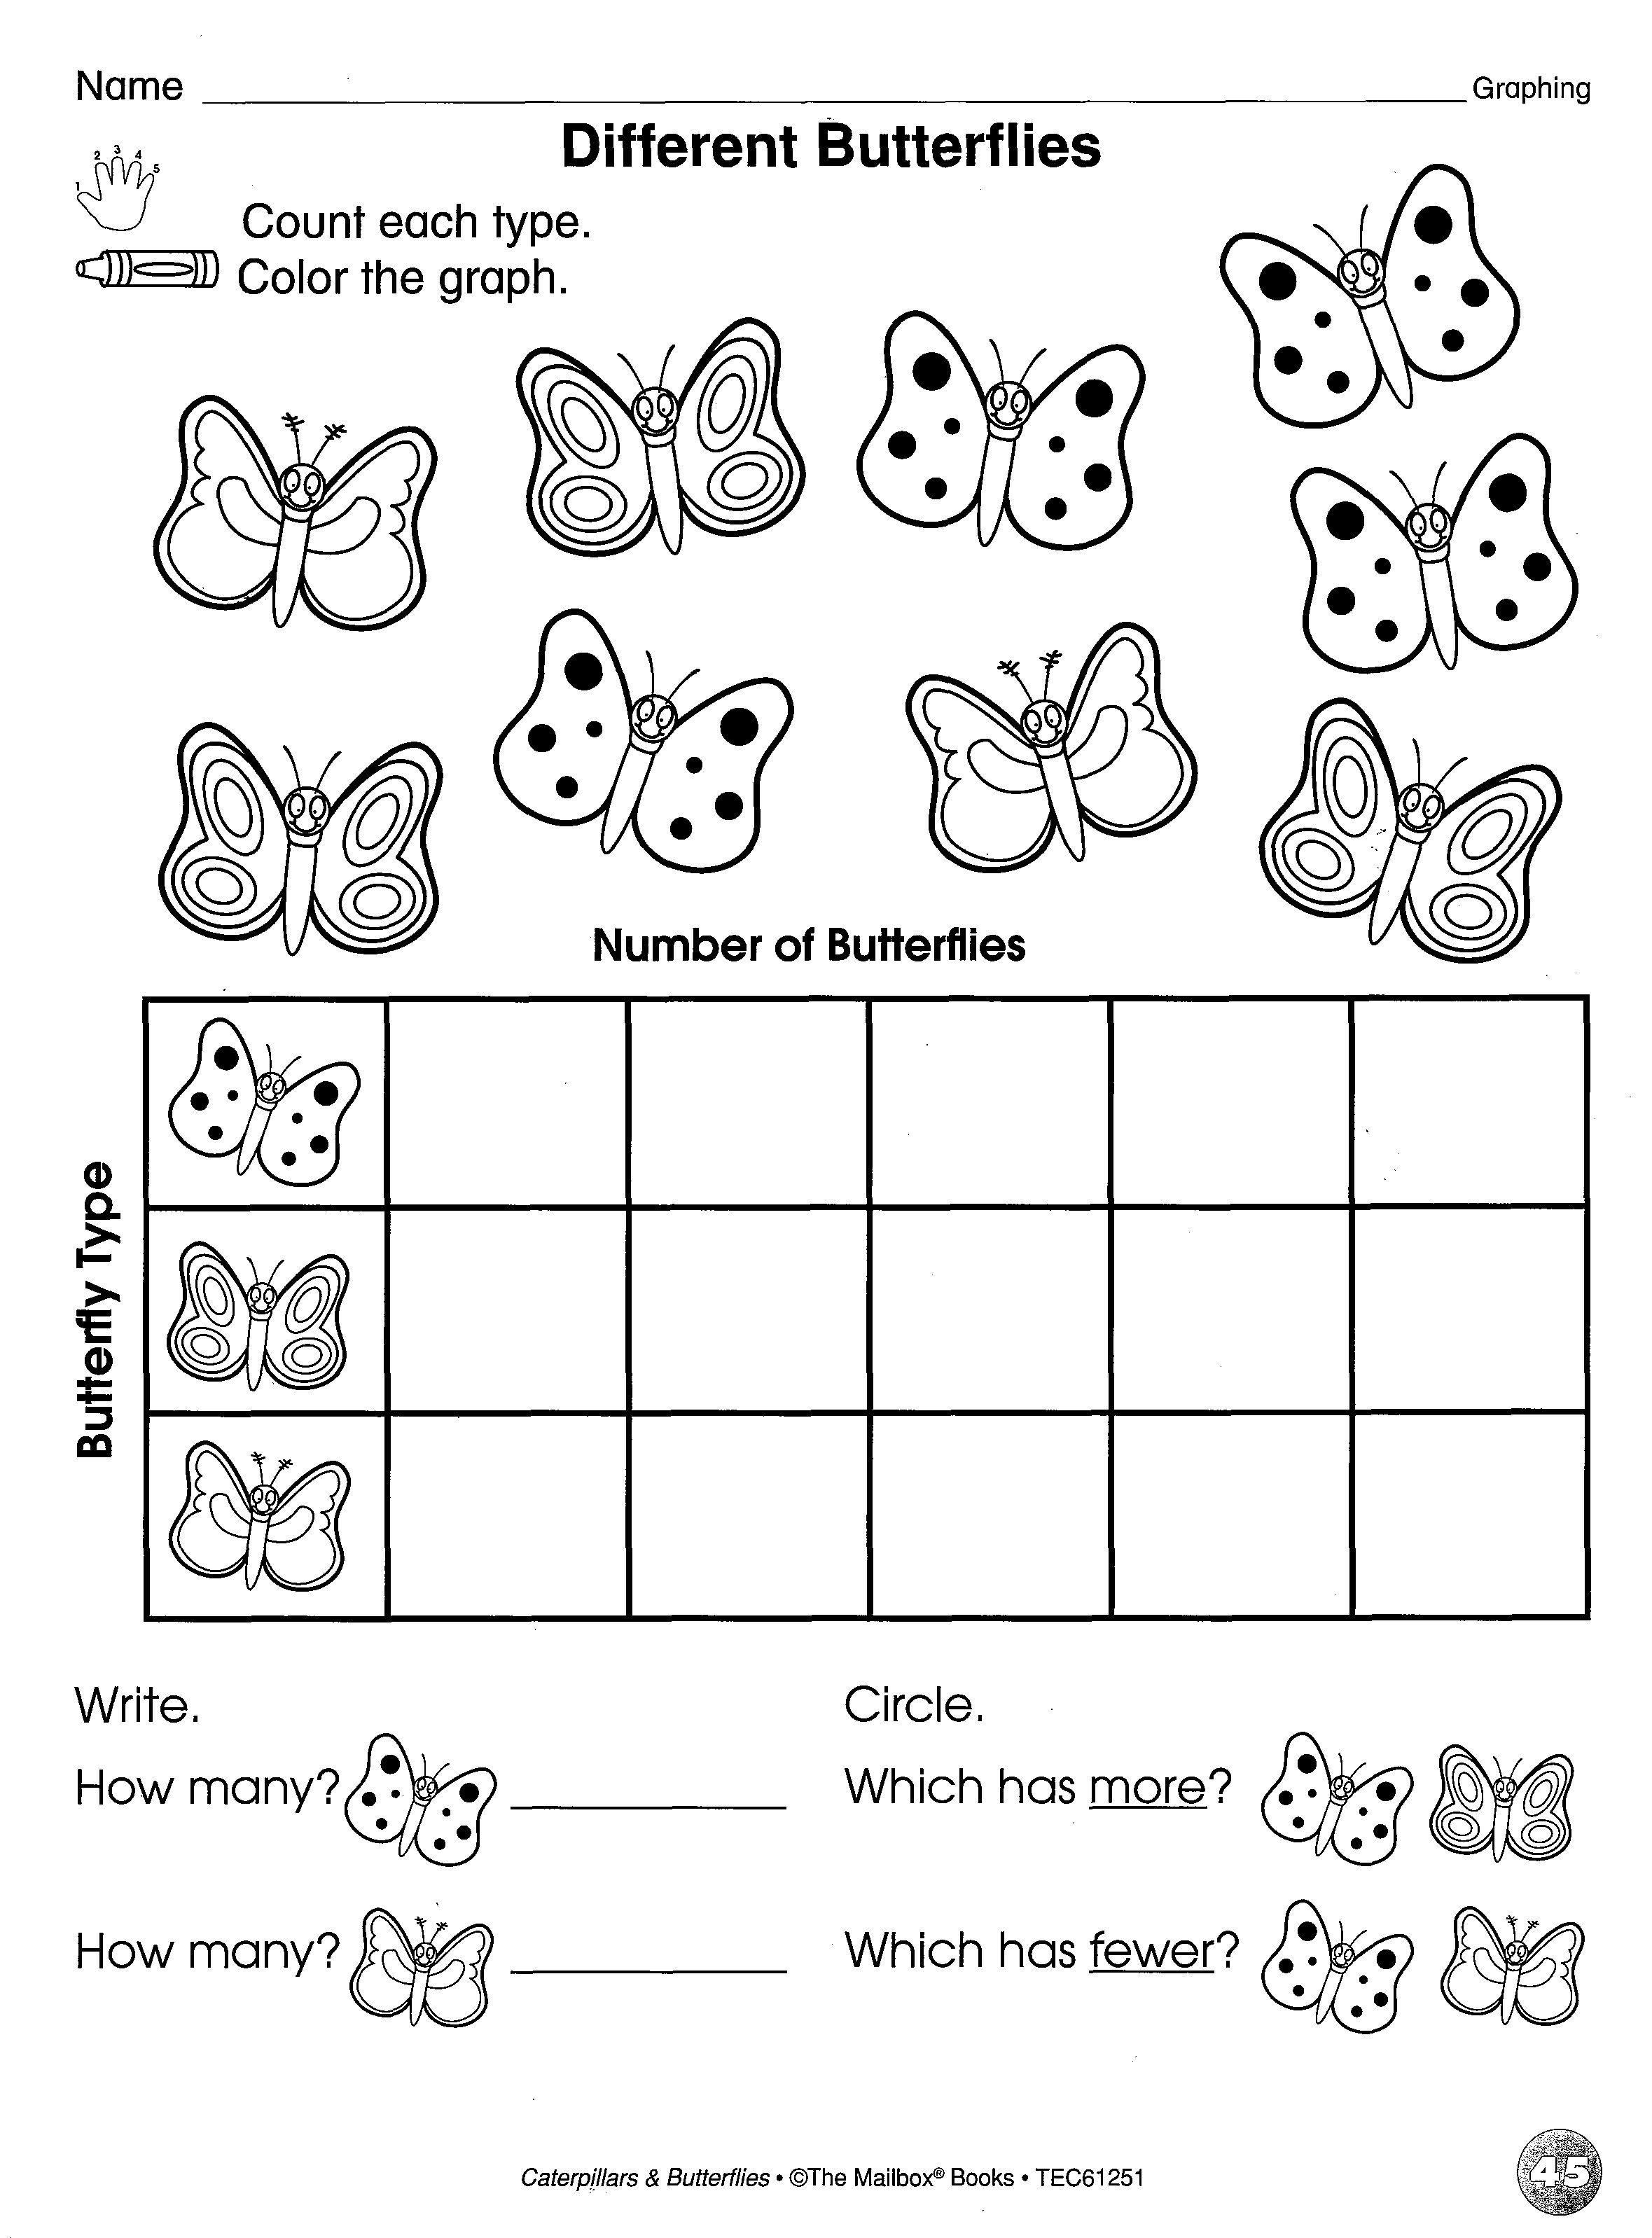 Butterfly Reproducible Page That Reinforces Counting